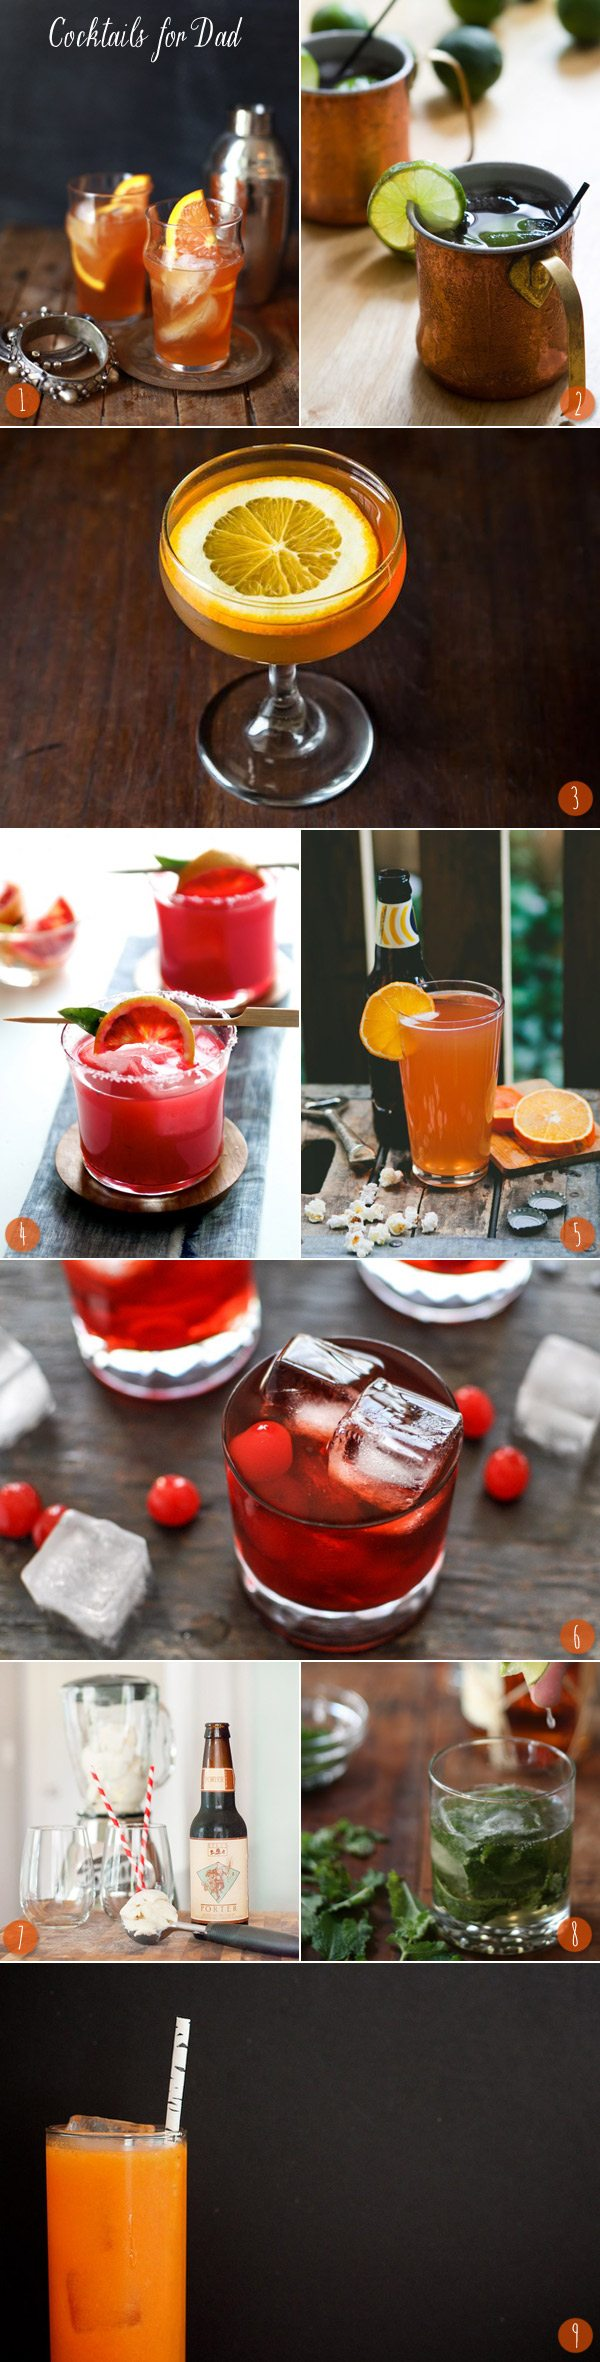 Cocktails for Dads - The Sweetest Occasion